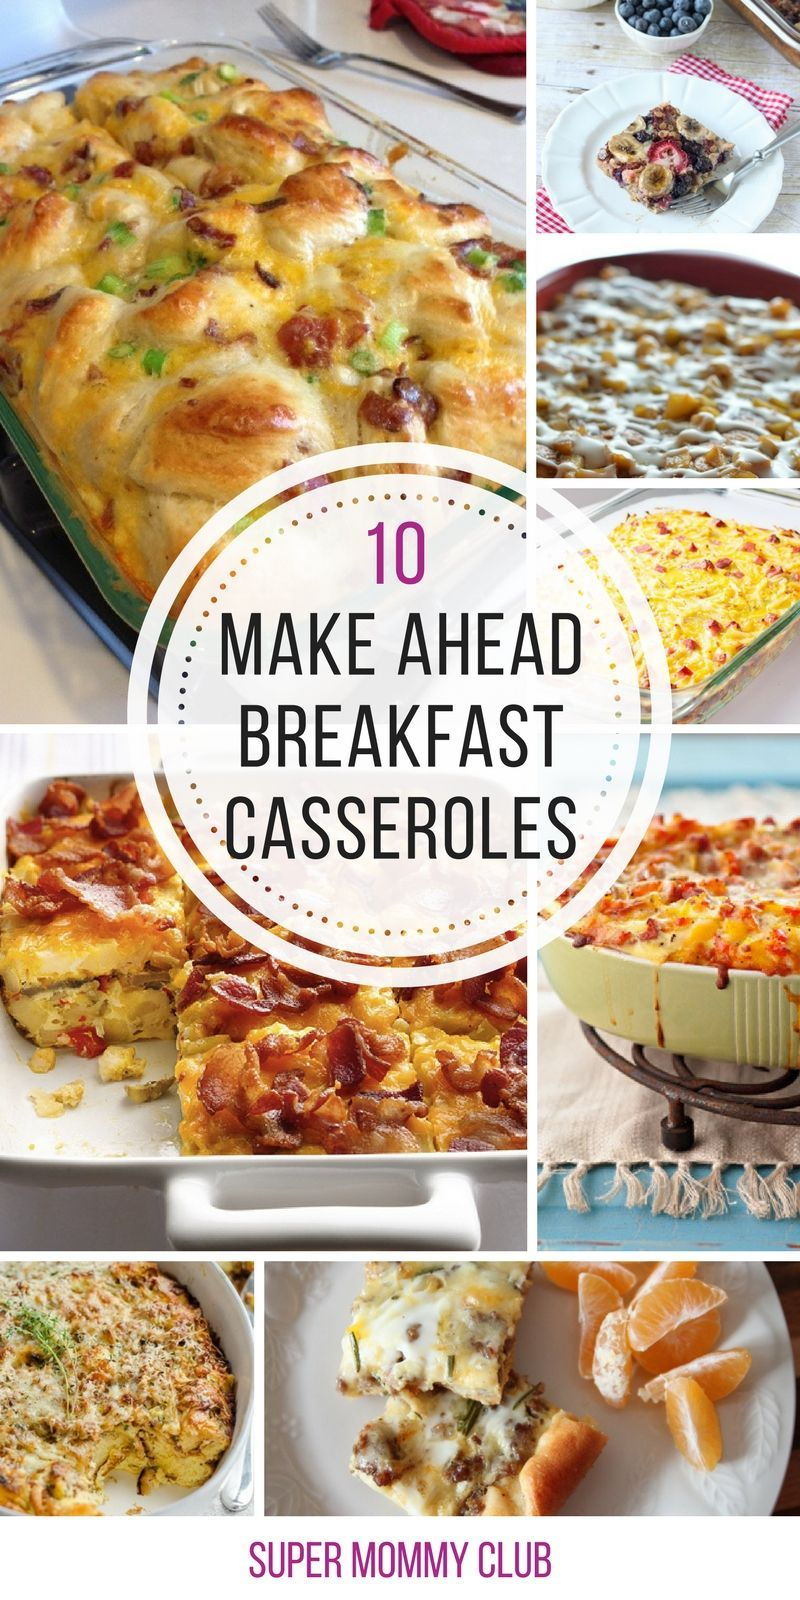 so many yummy breakfast casserole ideas here that are perfect for a